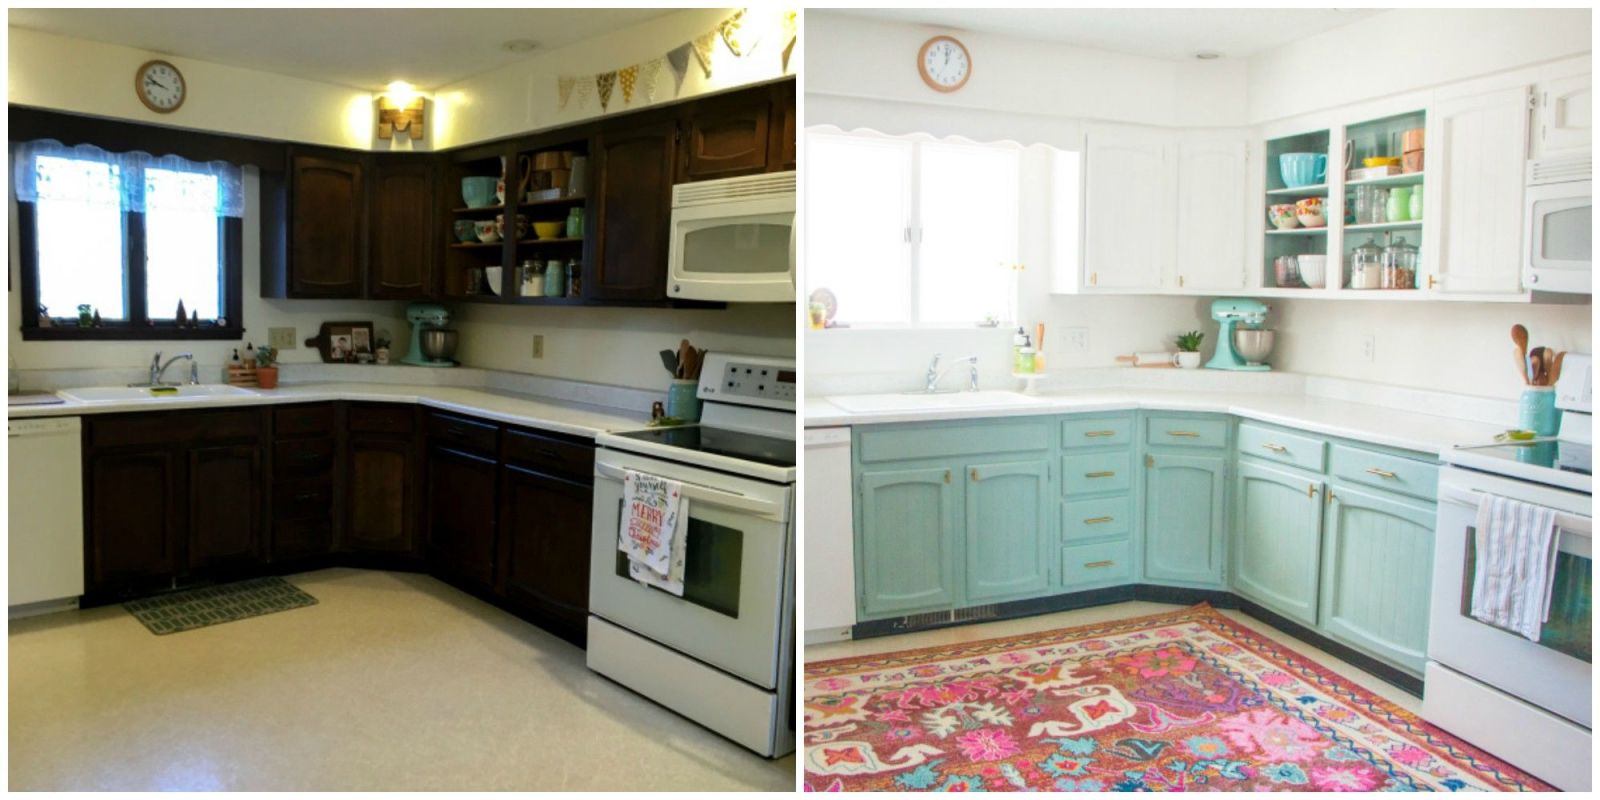 Images Of Remodeled Kitchens Before And After Home Makeover Ideas  Before And After Pictures Of House Renovations